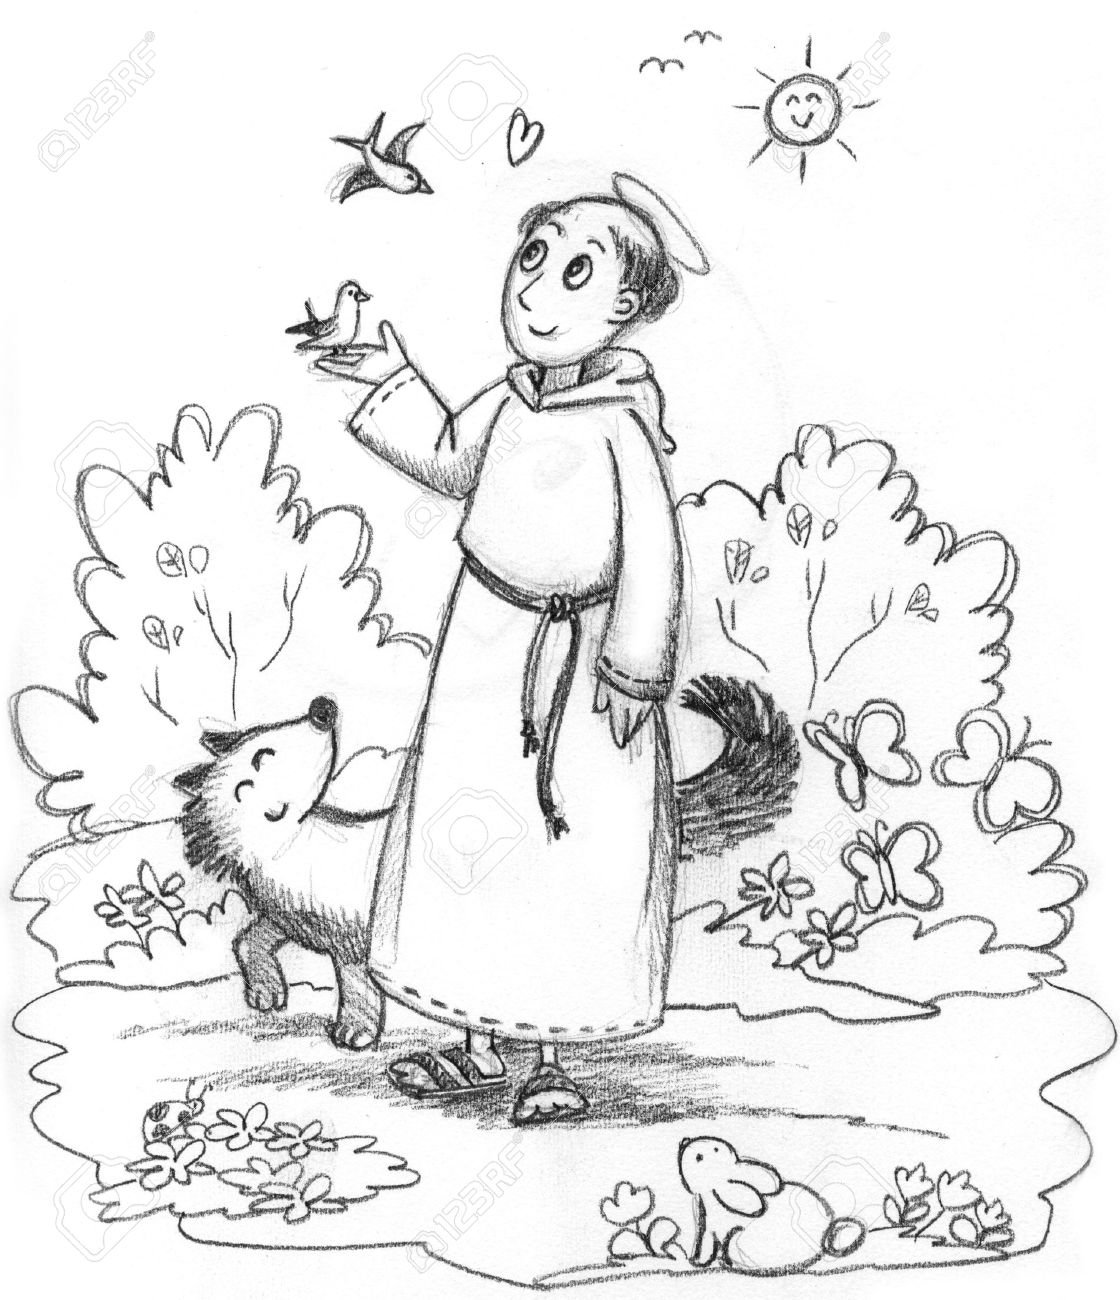 Saint Francis of Assisi Coloring Page - TheCatholicKid.com | 1300x1120